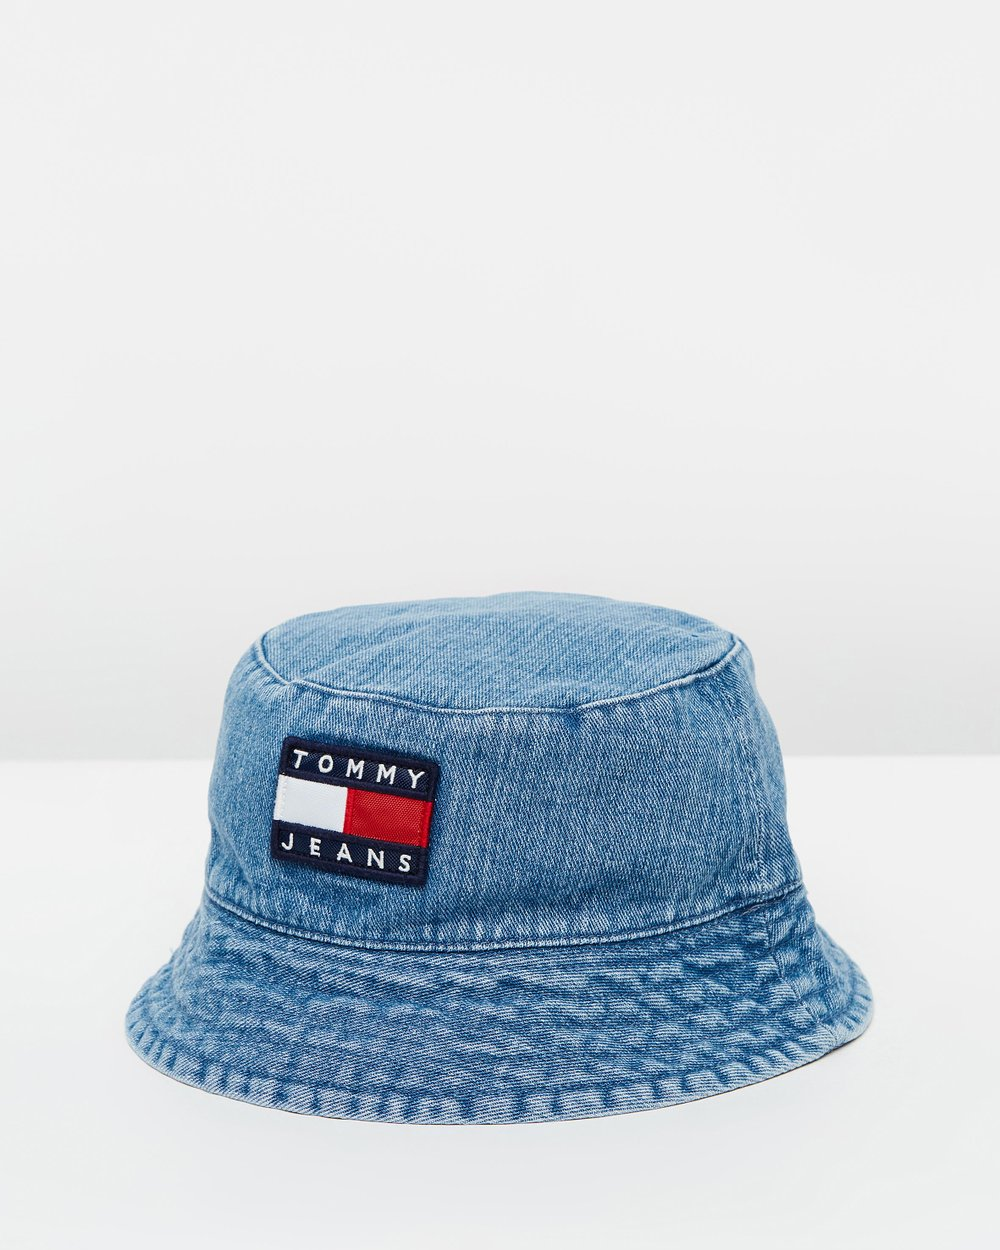 90s Sailing Denim Bucket Hat by Tommy Jeans Online  699a74996351